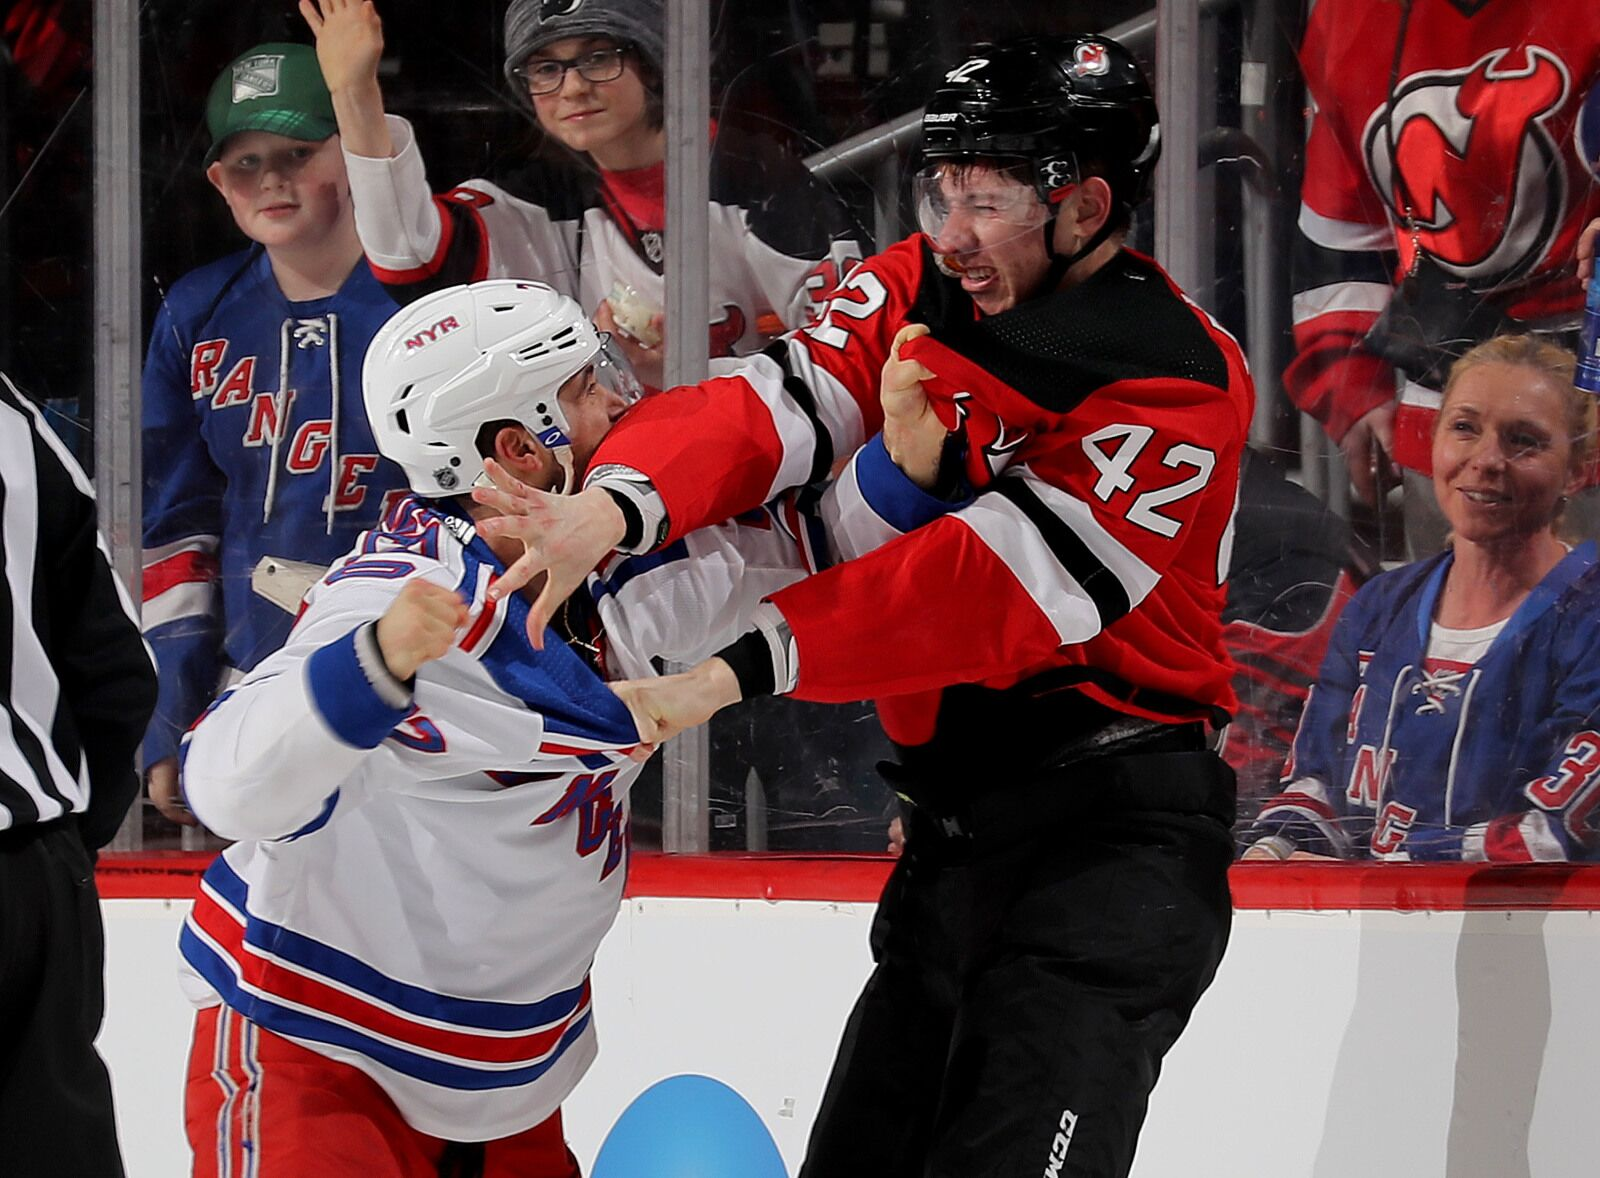 Devils just made the Rangers look like a bunch of jabronis